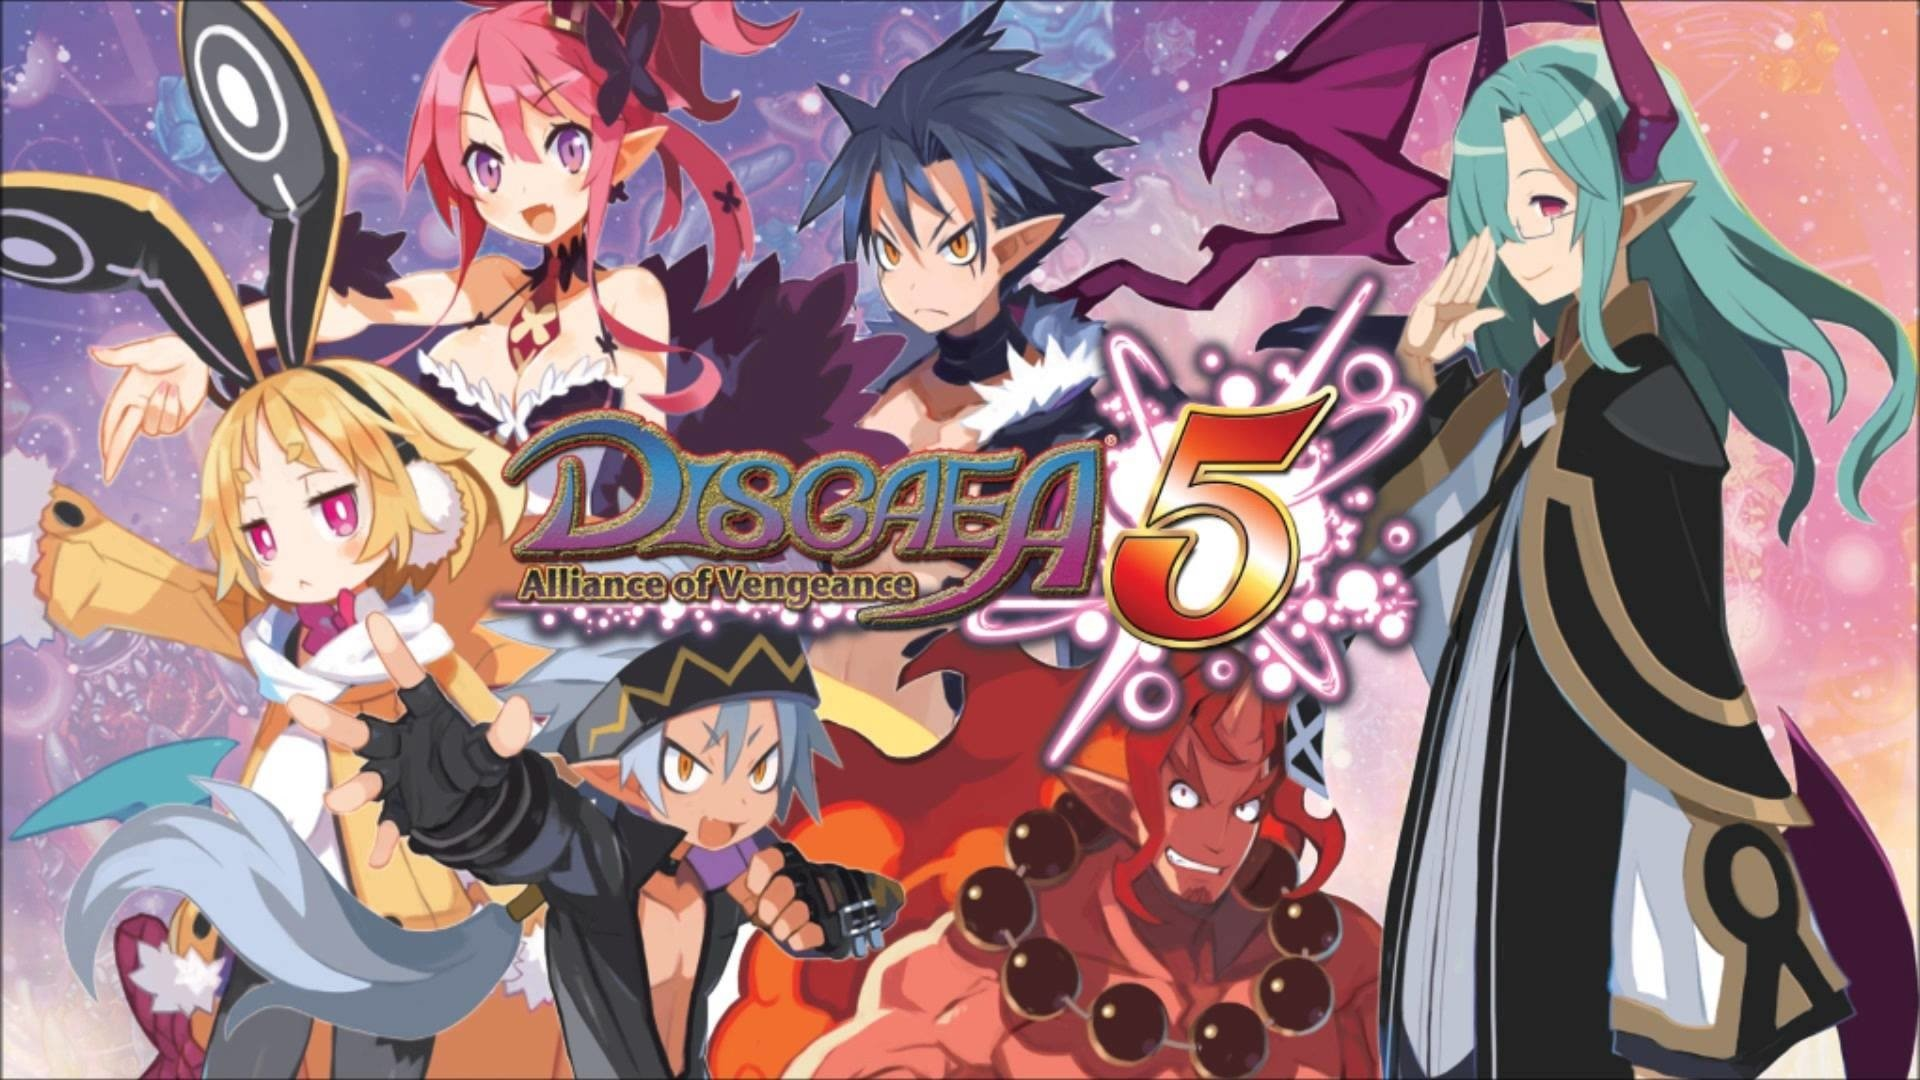 Res: 1920x1080, Video Game - Disgaea 5: Alliance of Vengeance Wallpaper